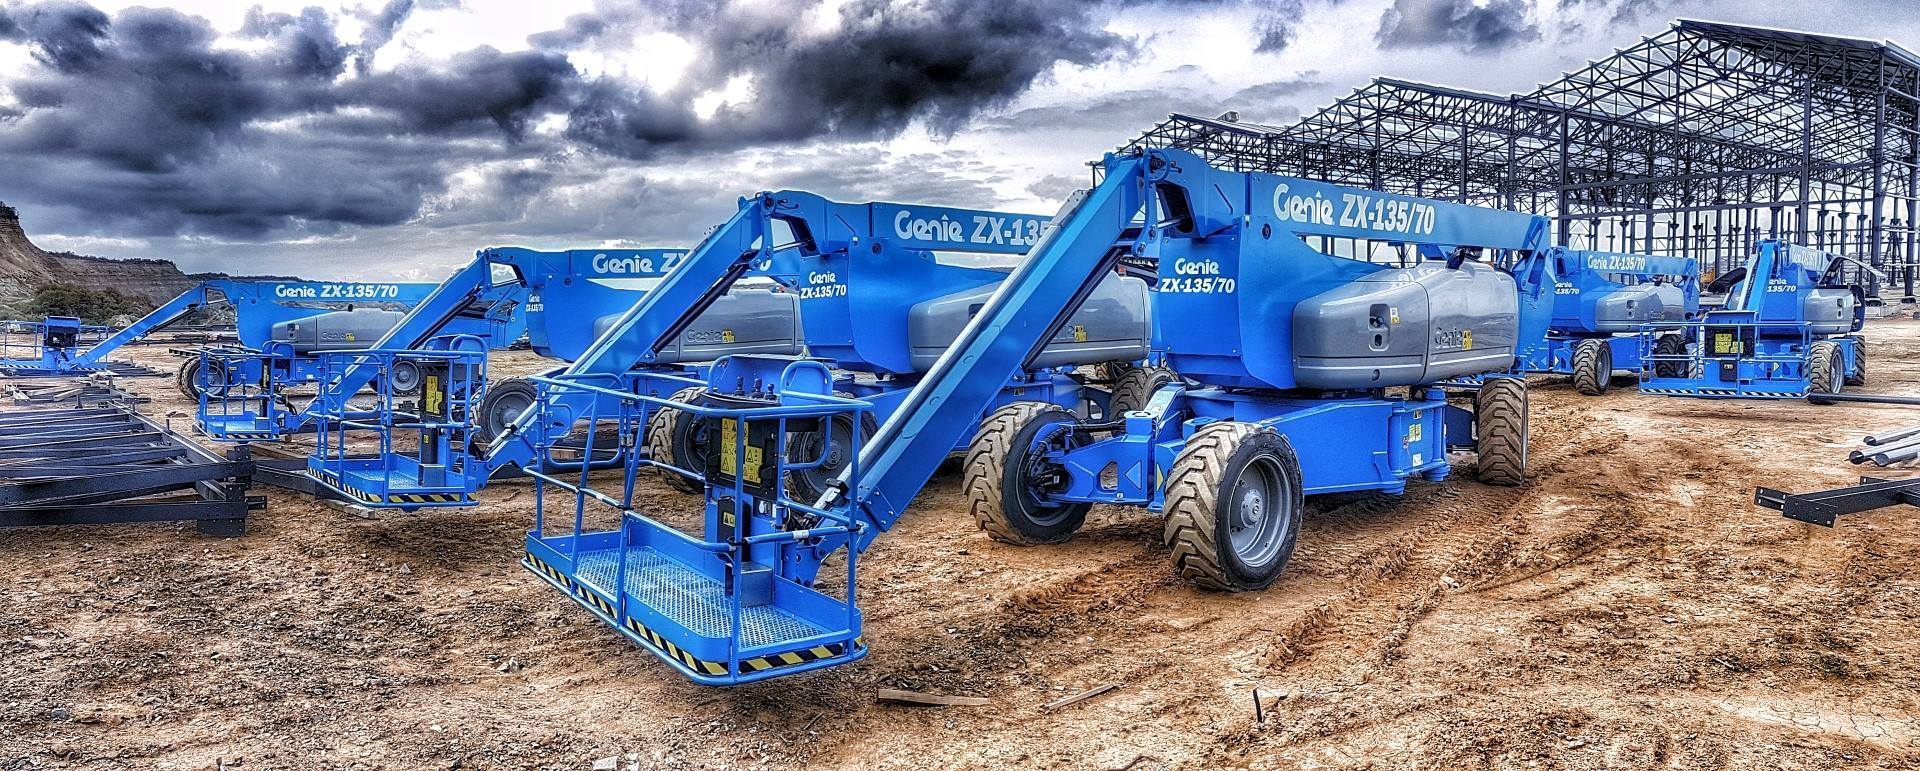 Where To Rent a Boom Lift Near Me